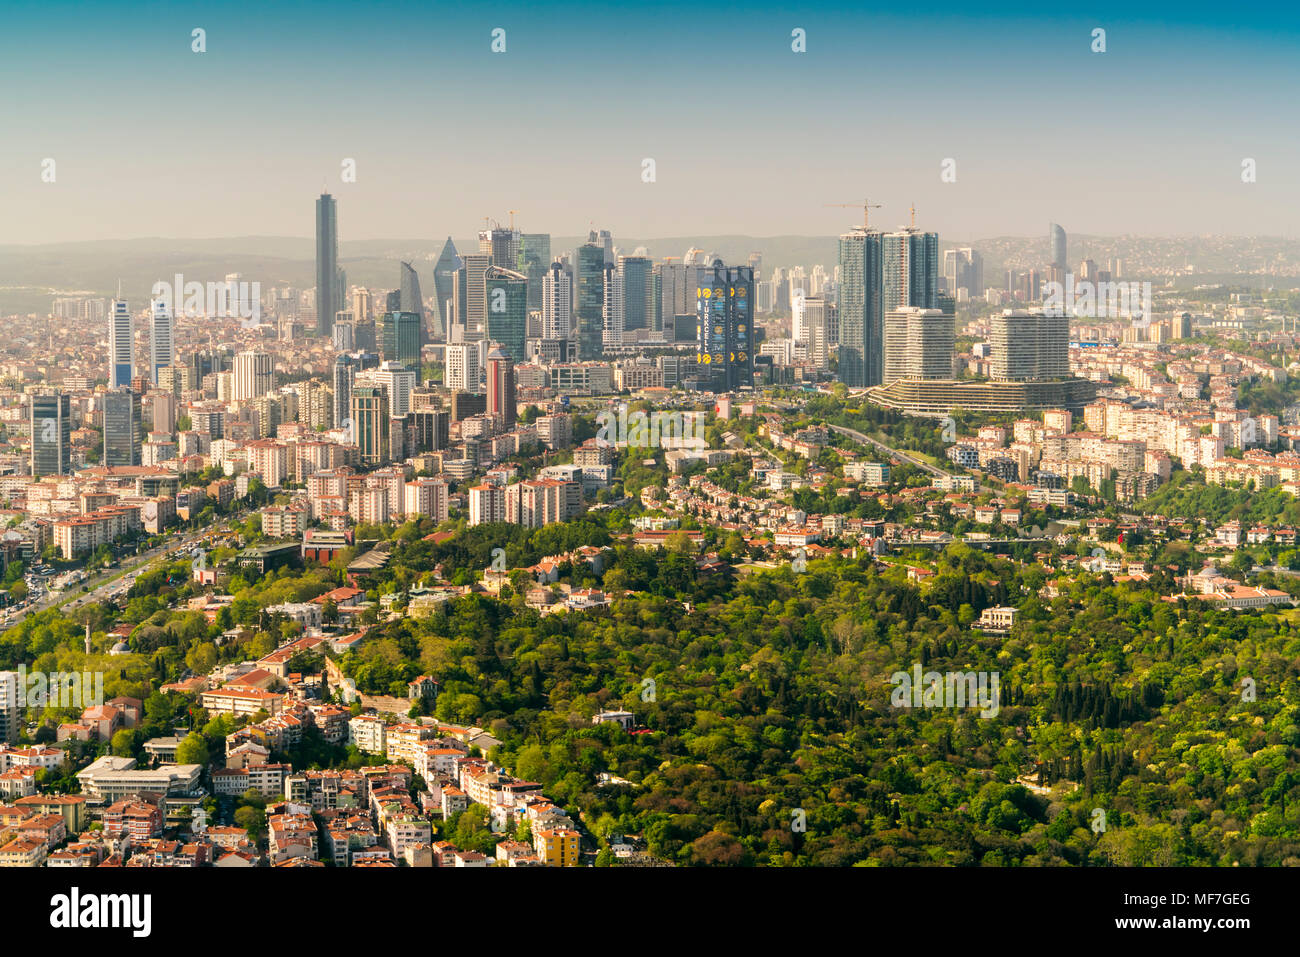 Turkey, Istanbul, financial district - Stock Image